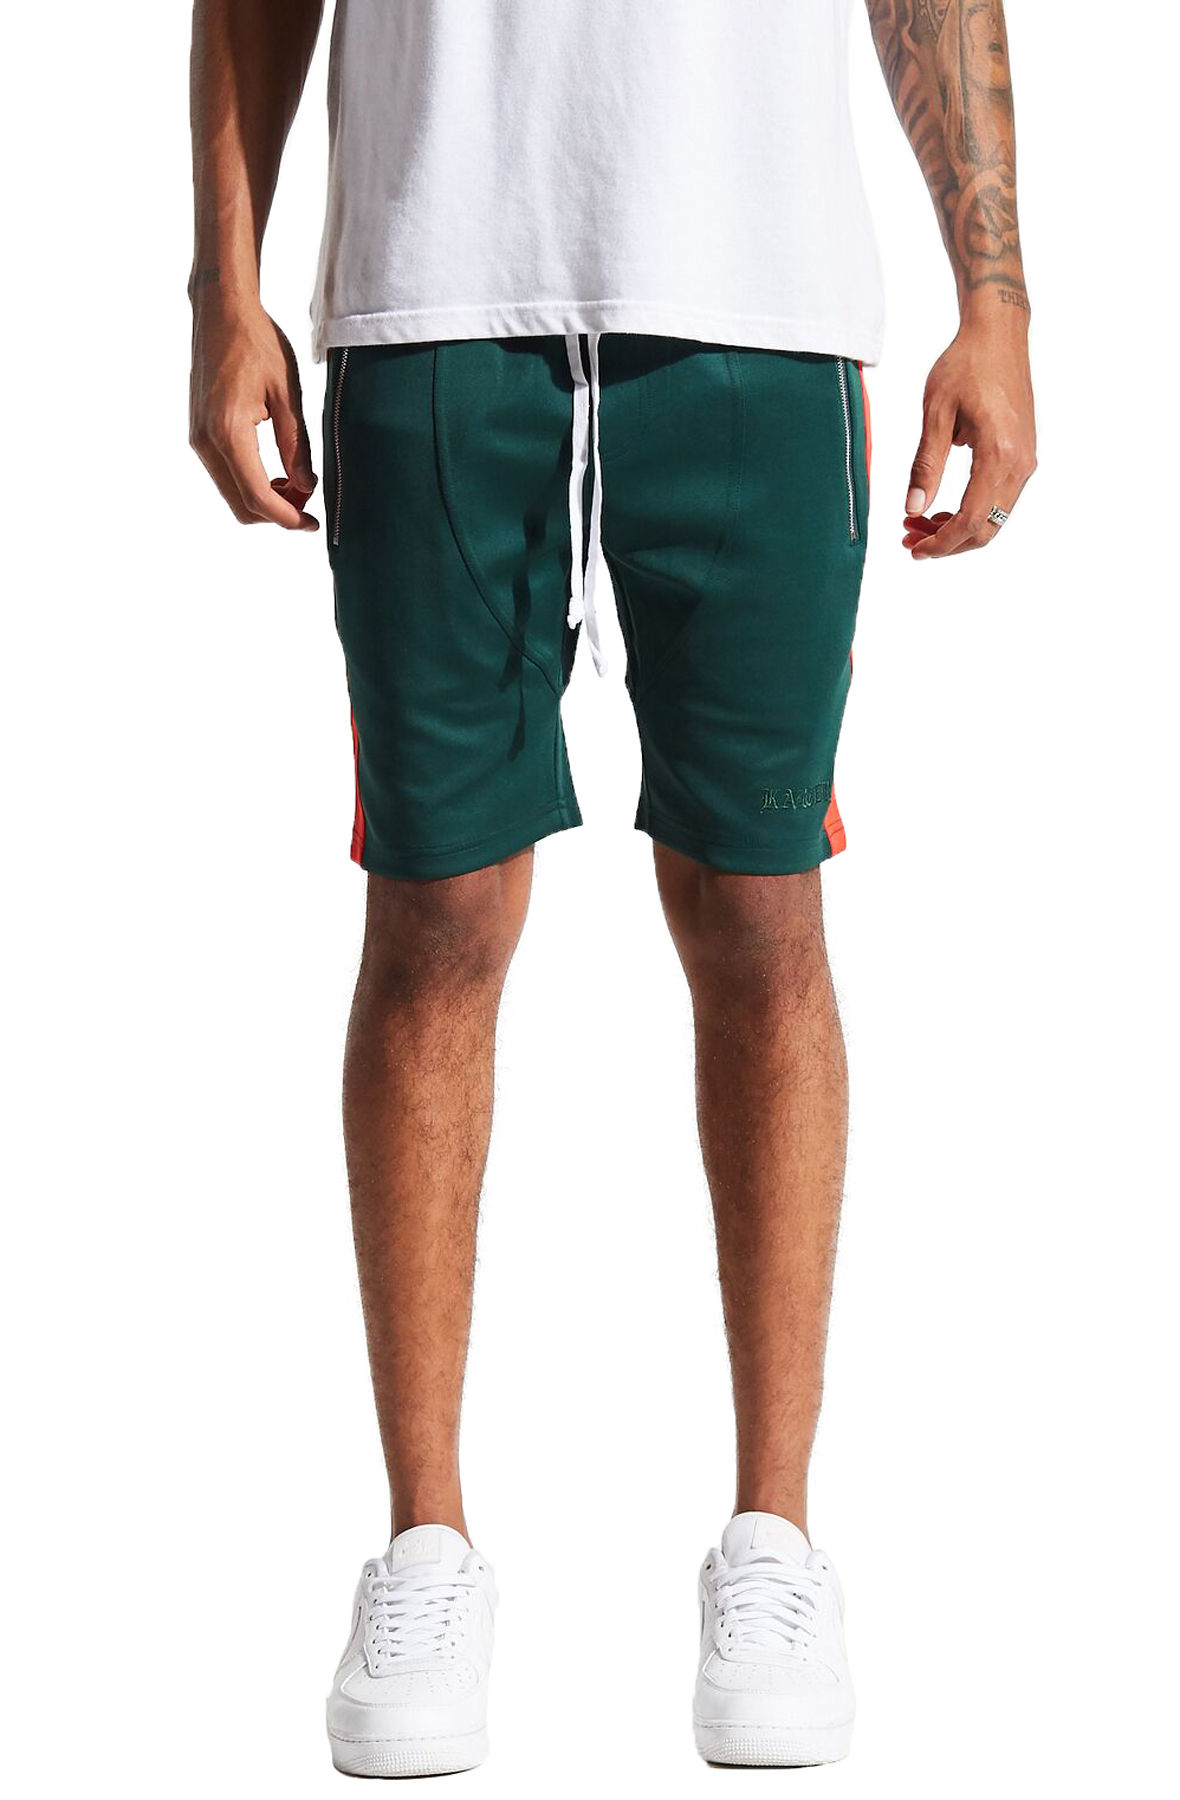 Image of The Bodnick Shorts in Forest Green and Red